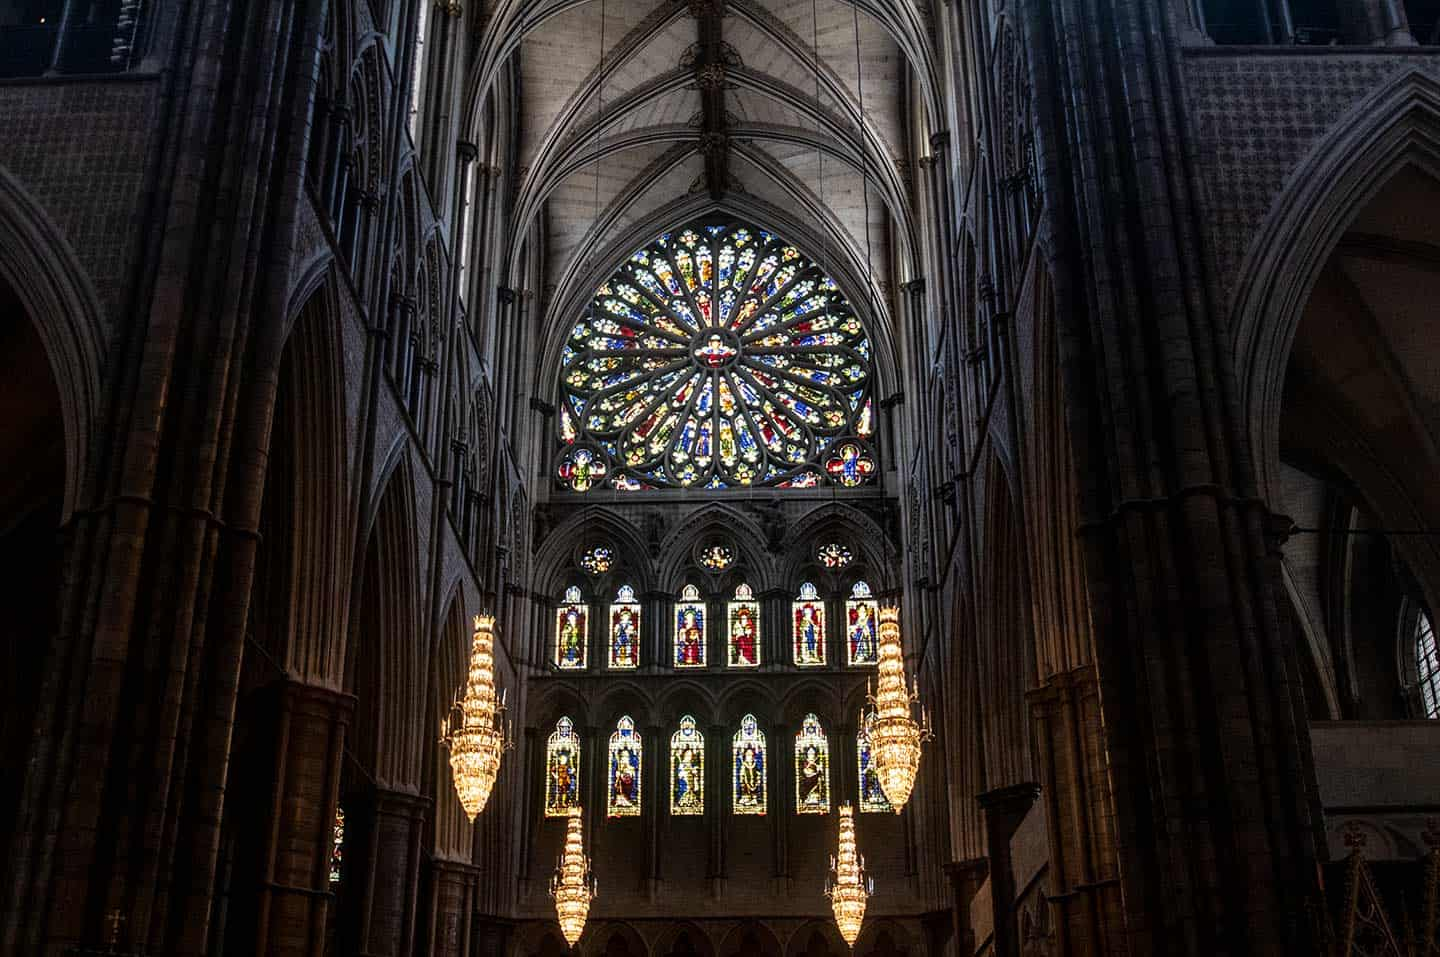 Imaghe of the south transept rose window at Westminster Abbey, London